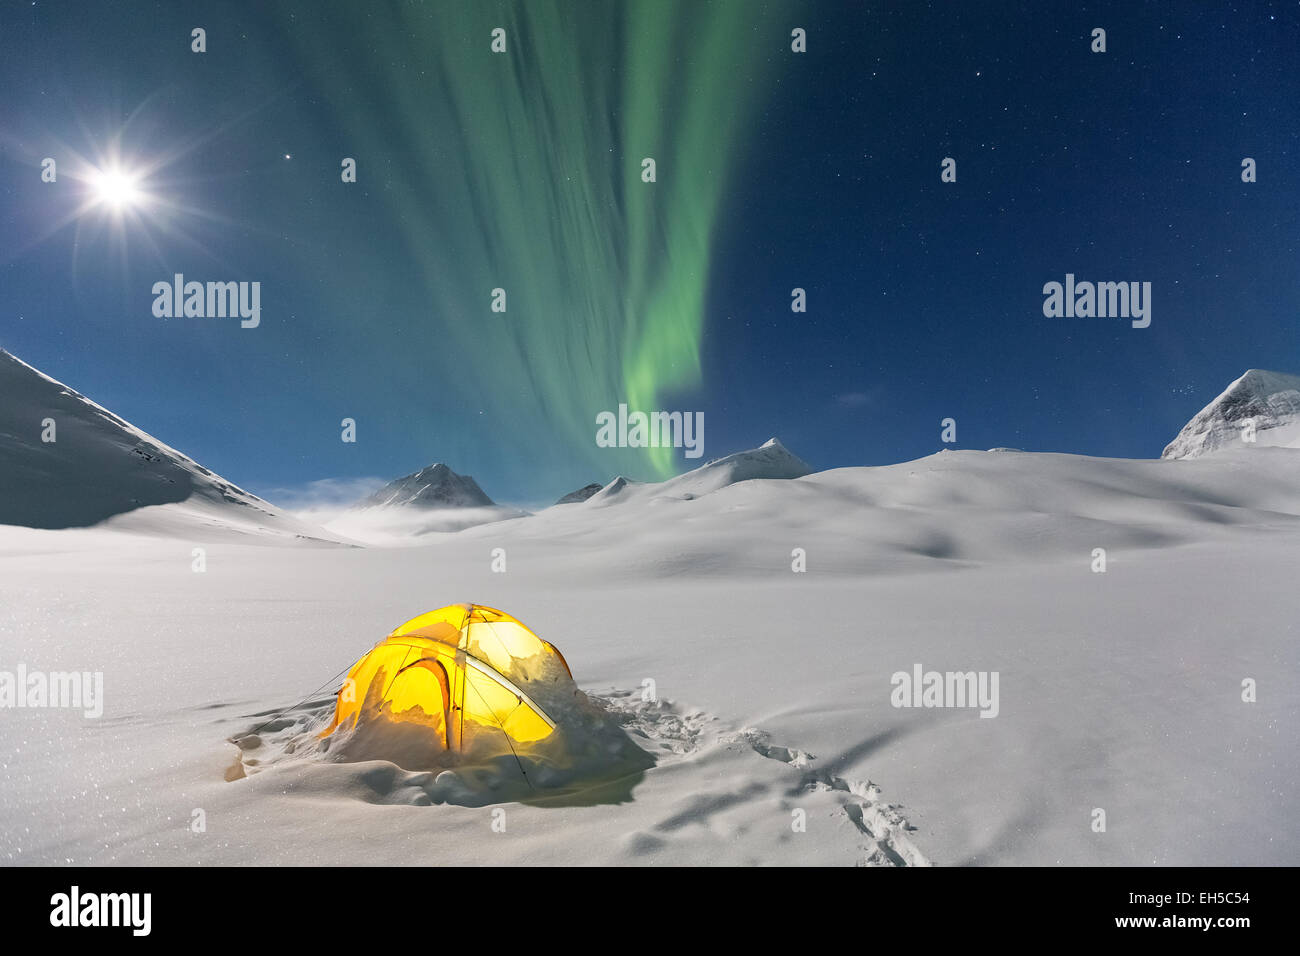 Nothern lights at Nallostugan hut, Kiruna, Northern Sweden, Europe, EU - Stock Image